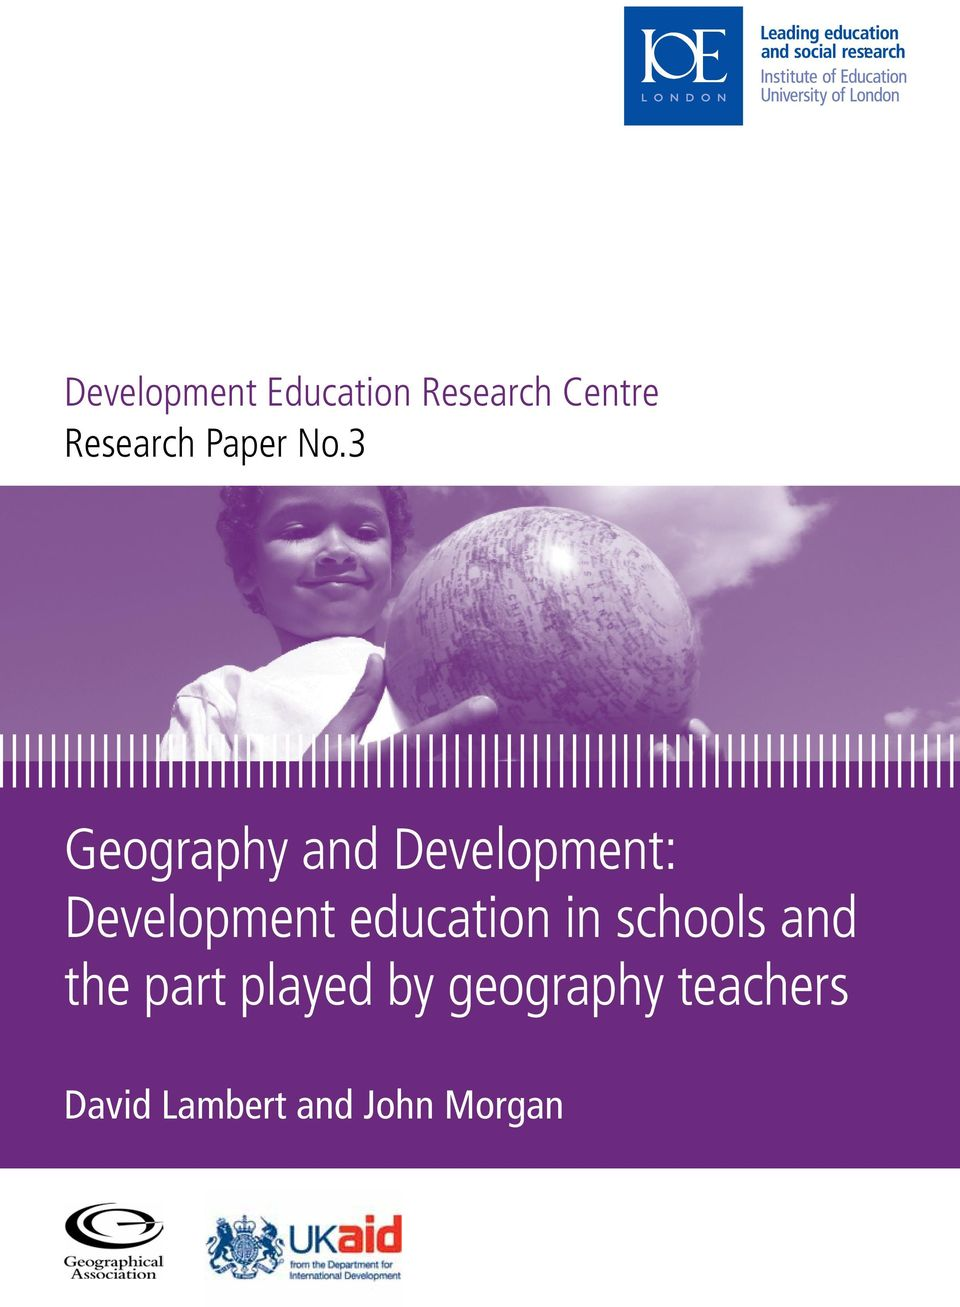 uk www.ioe.ac.uk Development Education Research Centre Research Paper No.